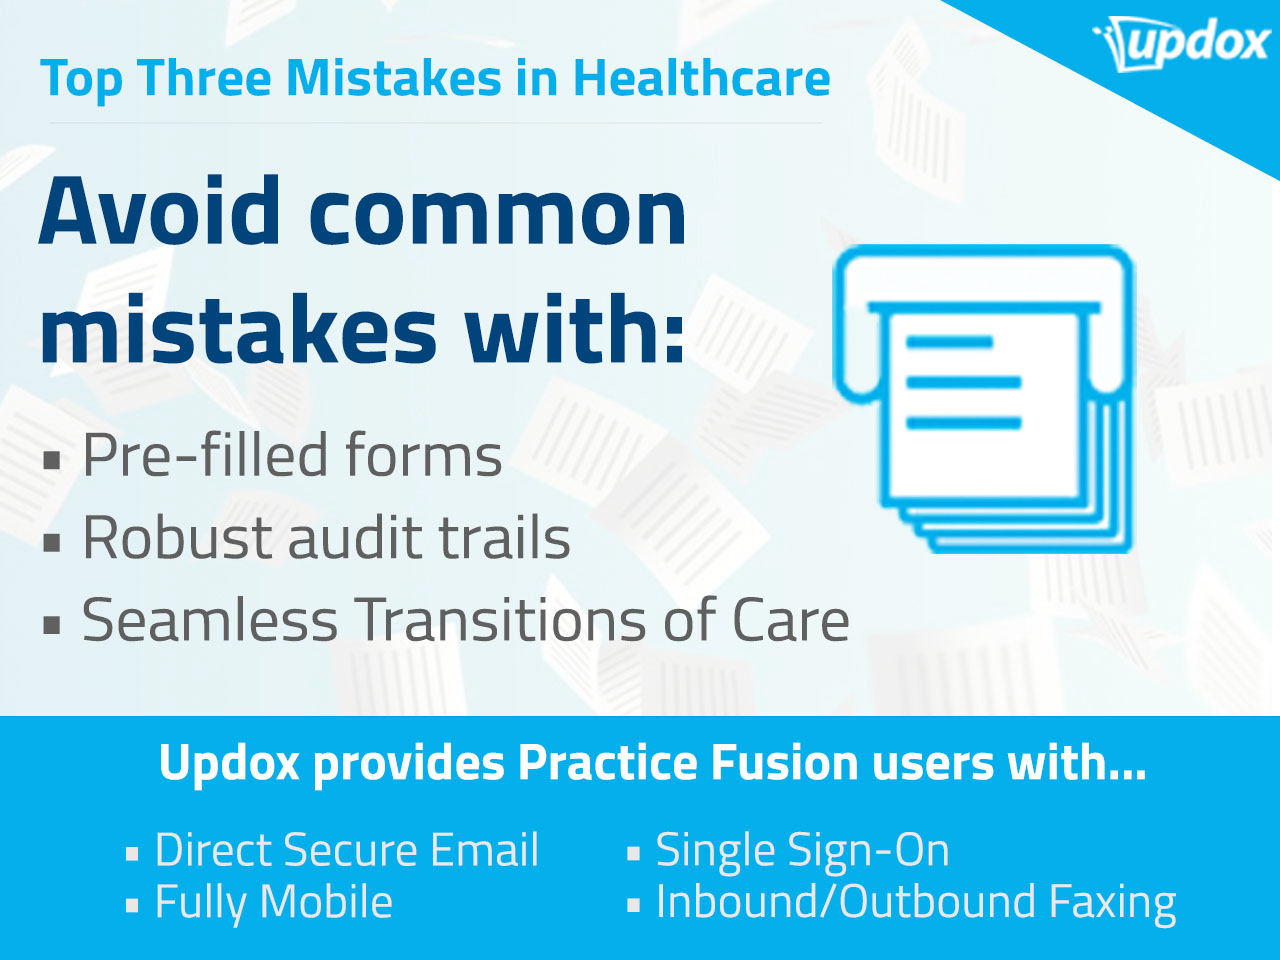 Avoid common mistakes with: Pre-filled forms, Robust audit trails, Seamless Transitions of Care